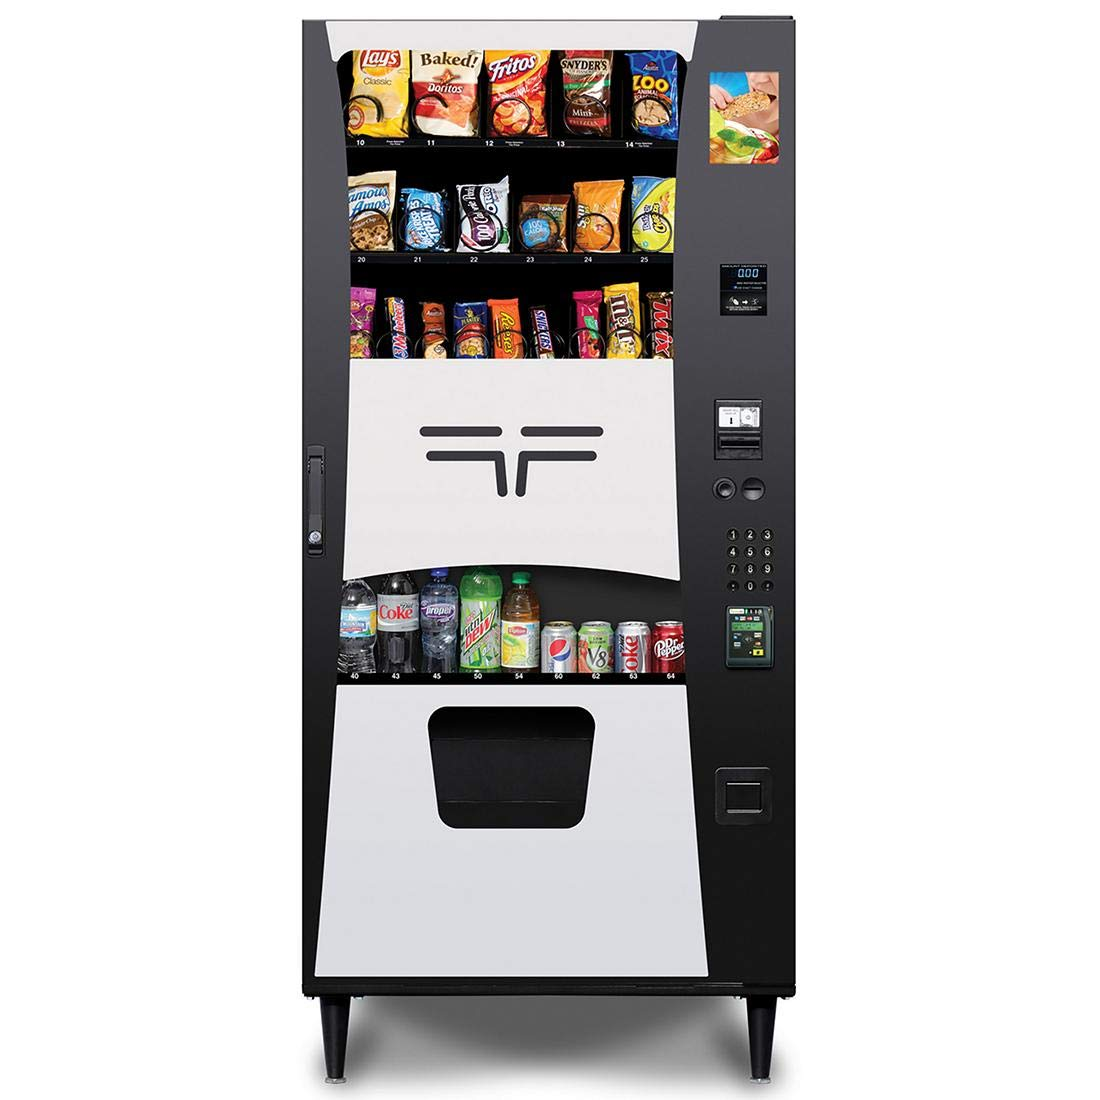 Selectivend SV 9-20 Snack and Beverage Cred Store Vending with Machine Industry No. 1